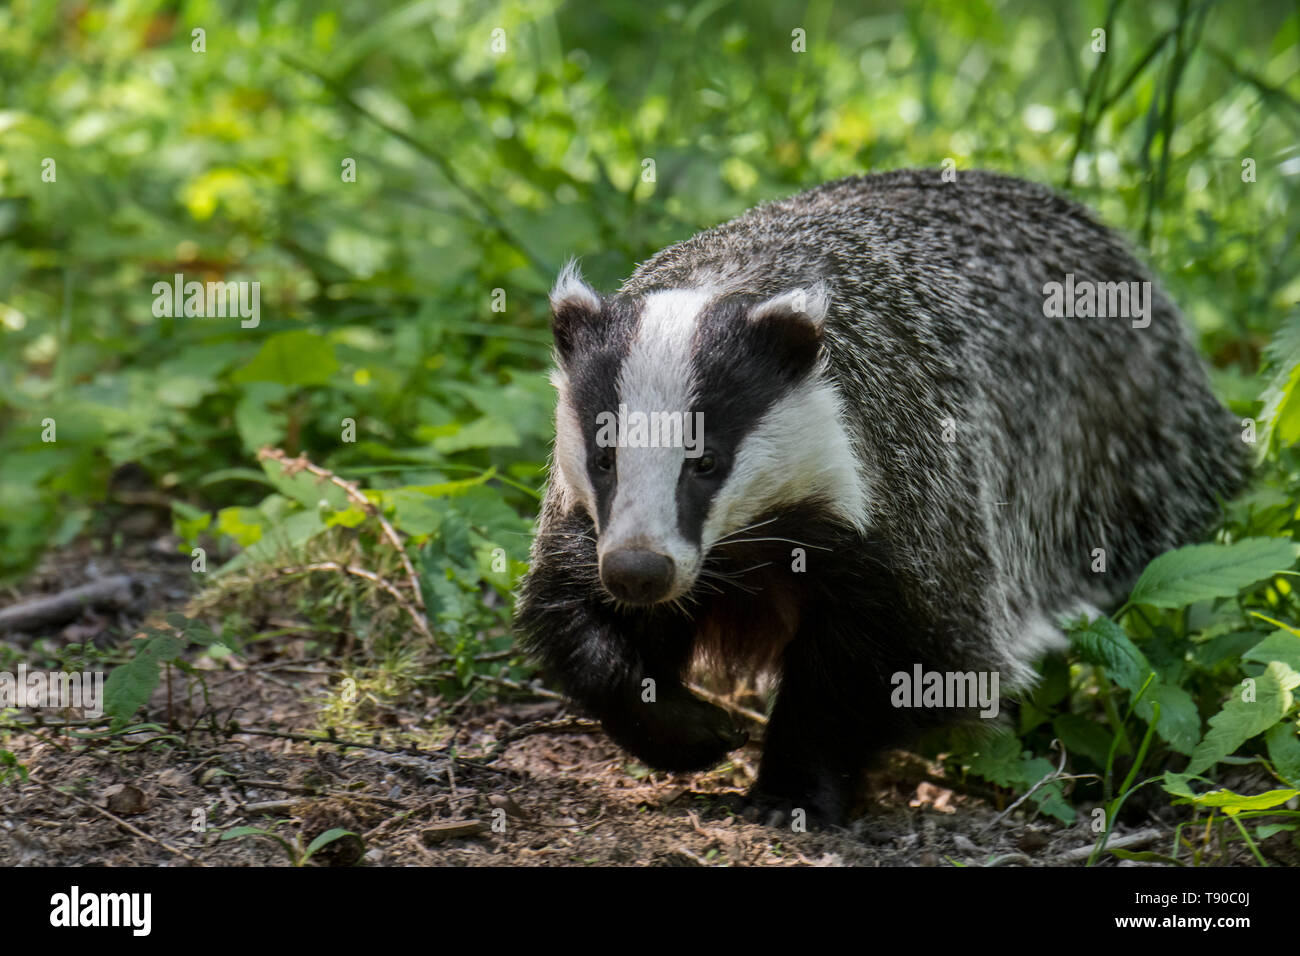 European badger (Meles meles) foraging in the undergrowth / scrub at forest edge Stock Photo